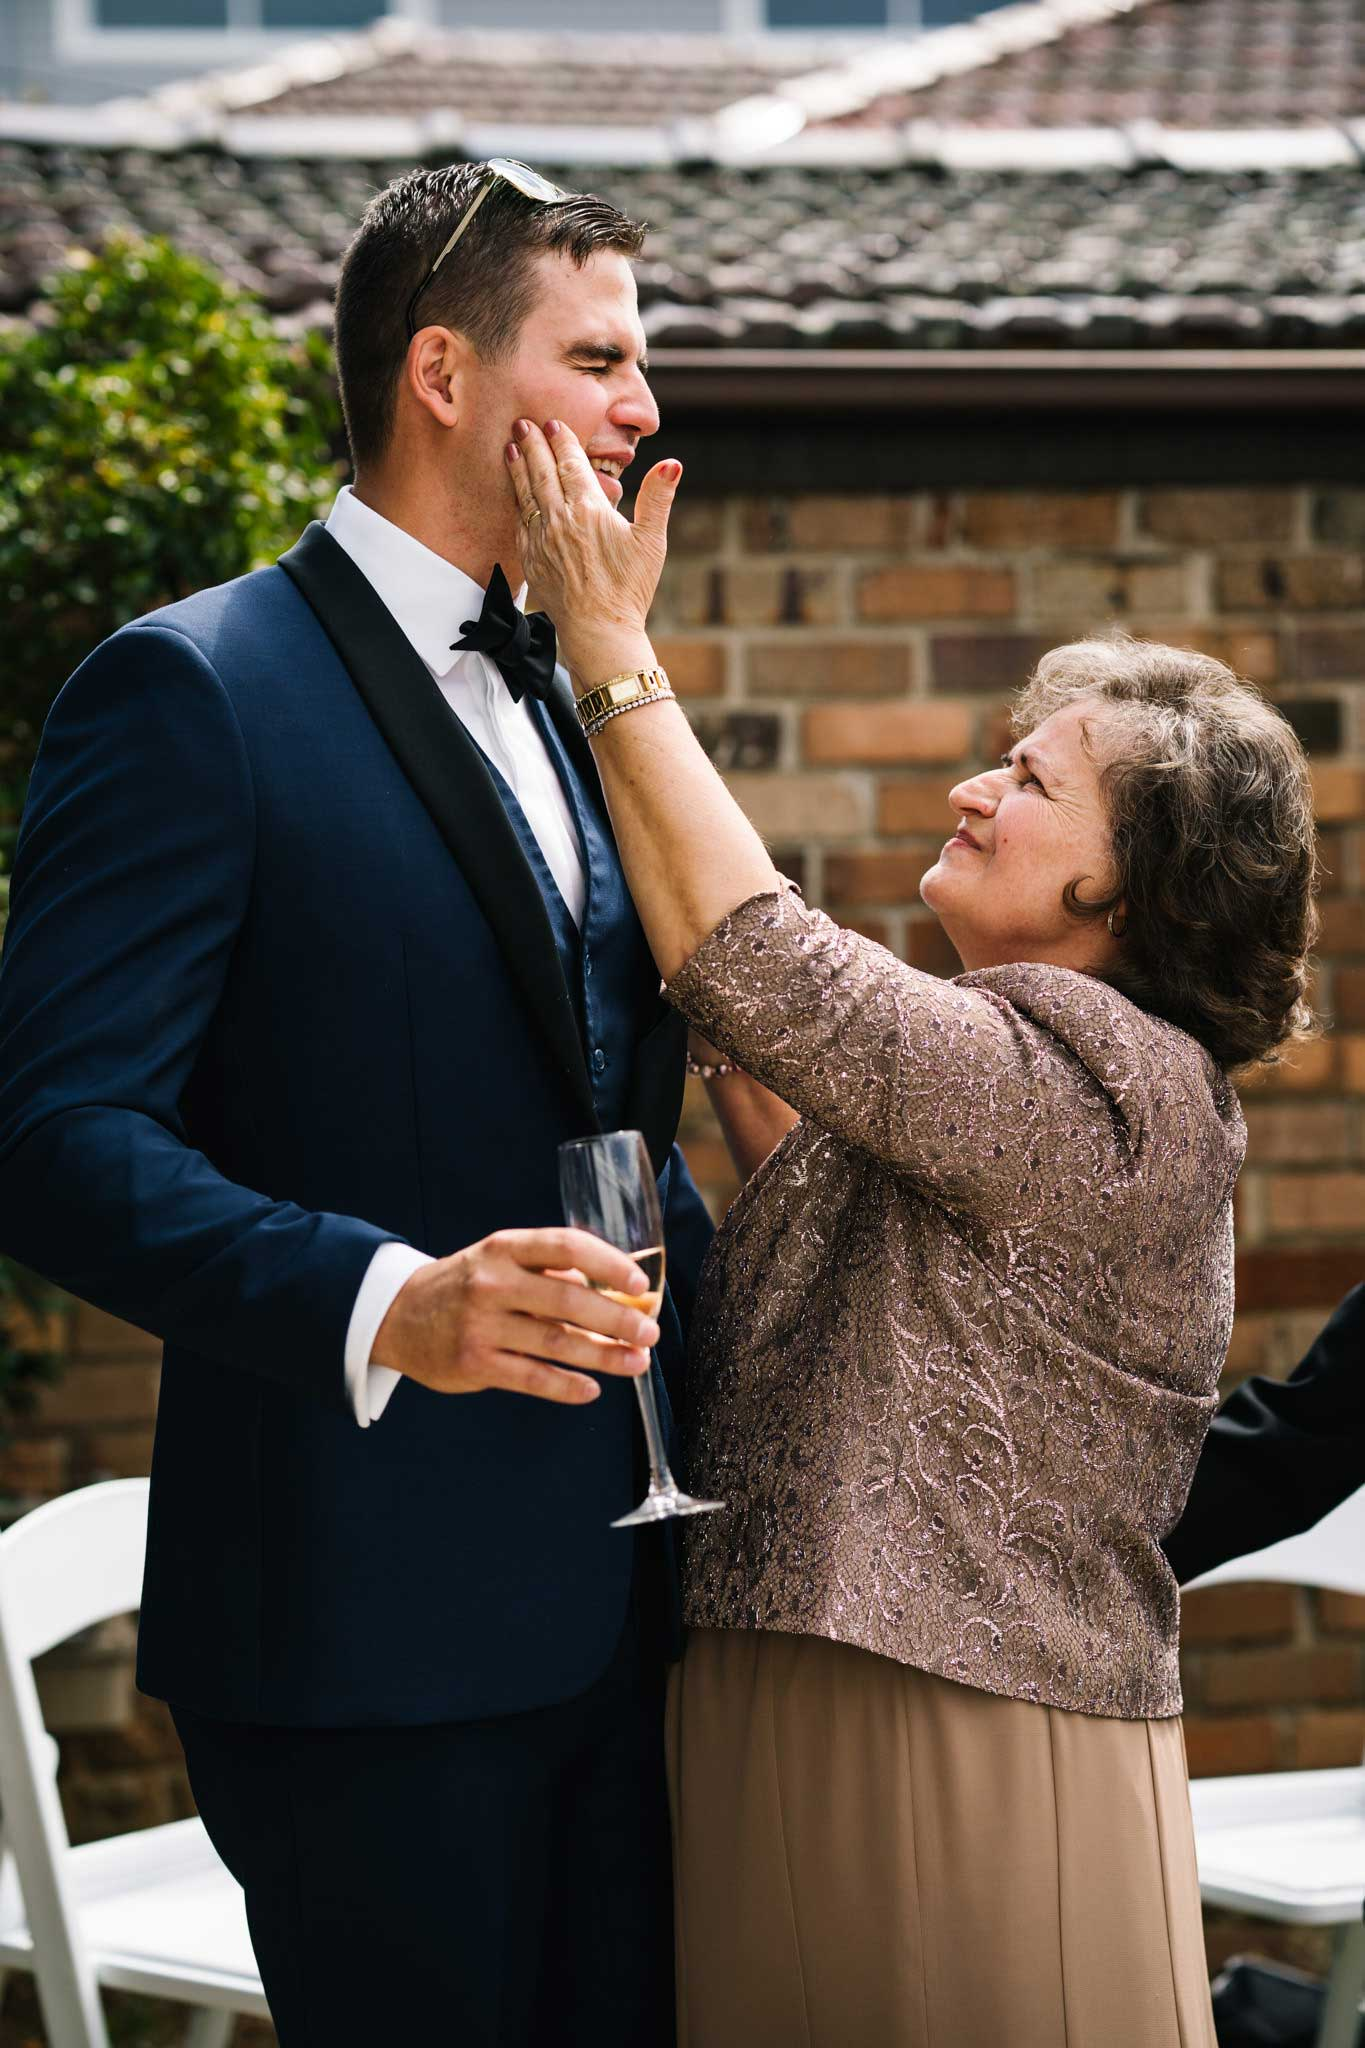 Grandmother playfully slaps groom on the cheek